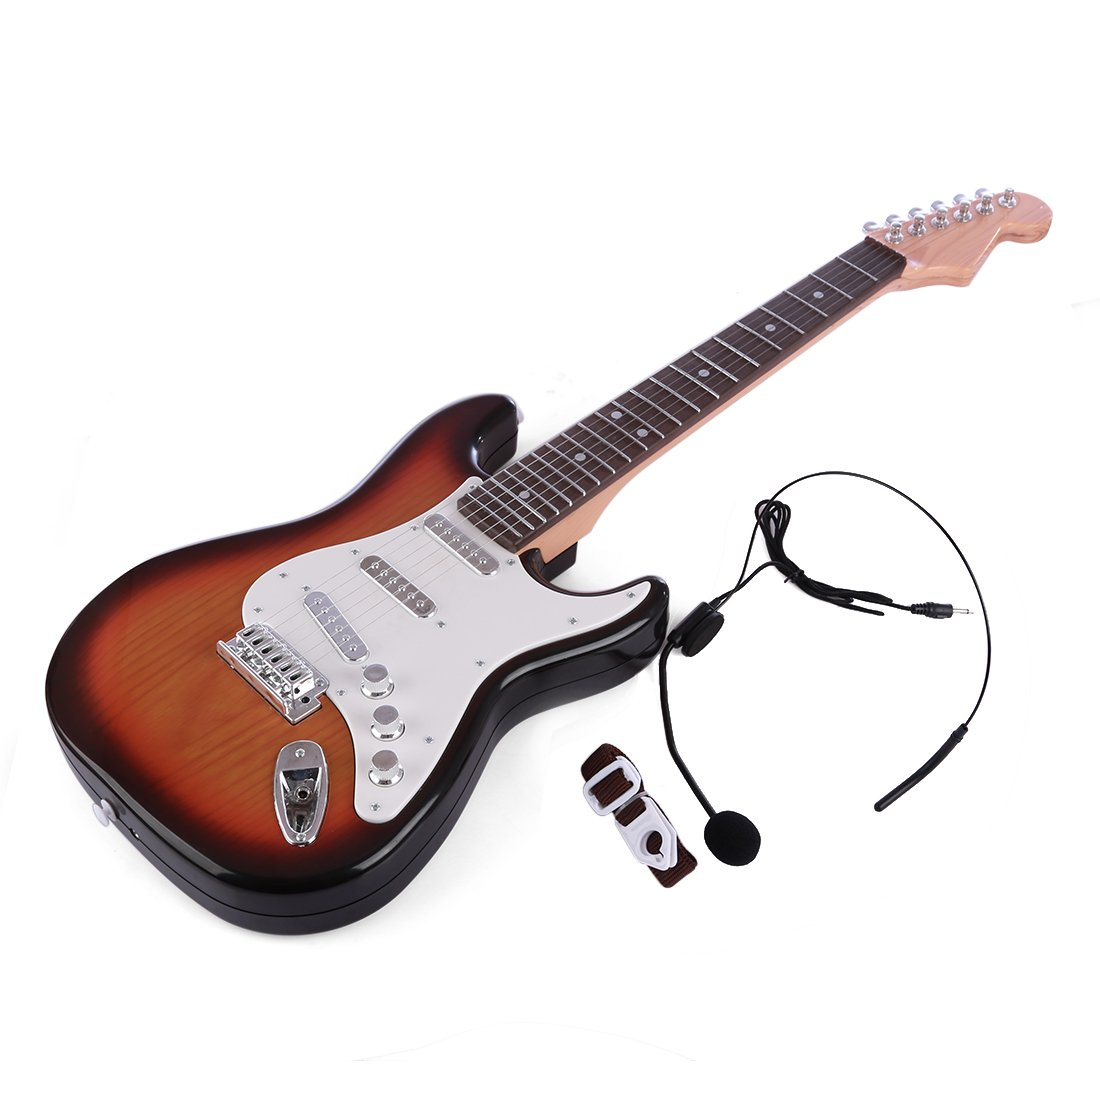 Yamix Guitar for Kids, 6 Strings Rock Band Music Electric Guitar Band Musical Guitar Playthings Rock Star Guitar Kids Musical Instruments Educational Toy